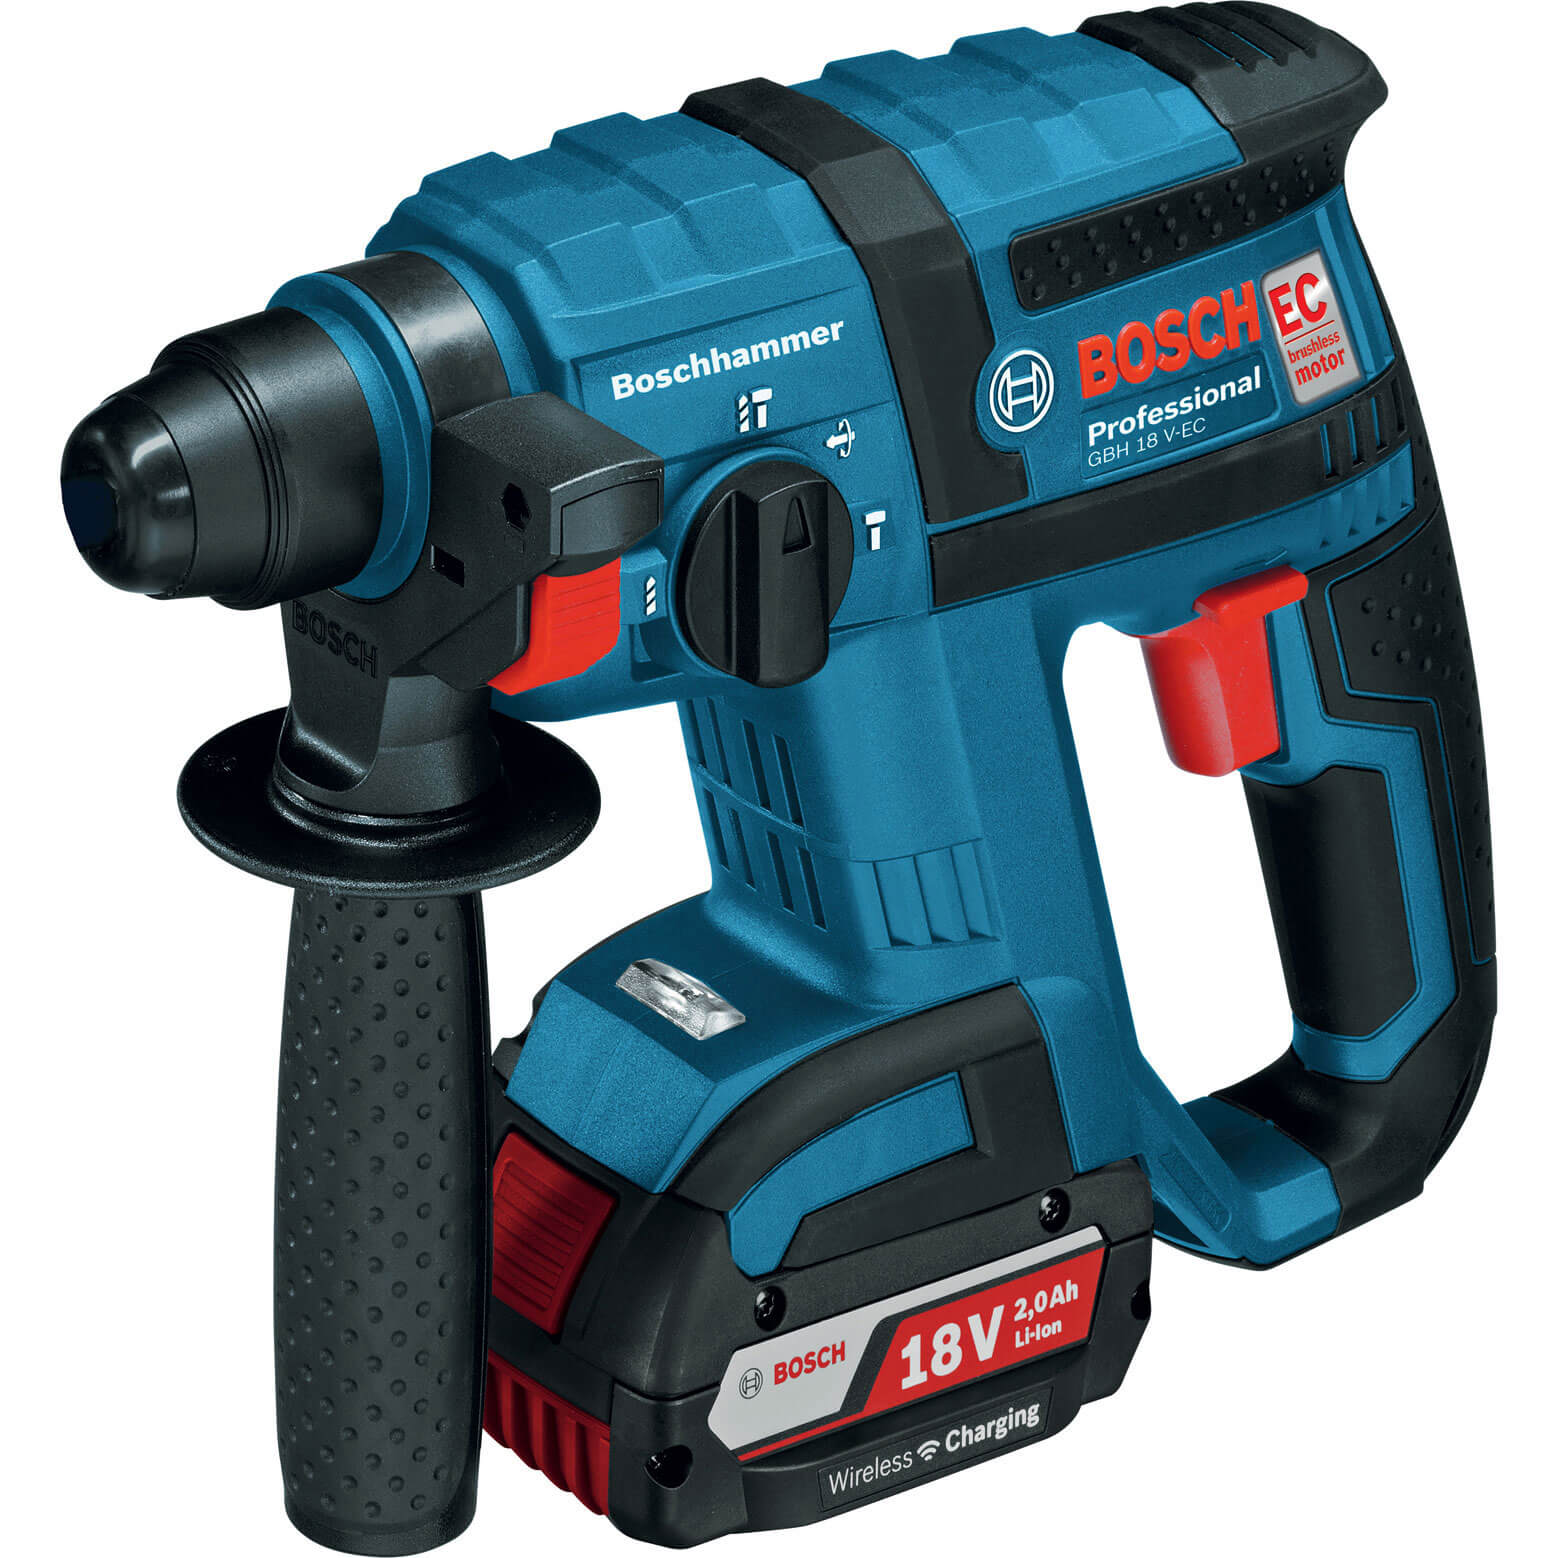 bosch gbh 18 v ec 18v cordless sds drill. Black Bedroom Furniture Sets. Home Design Ideas